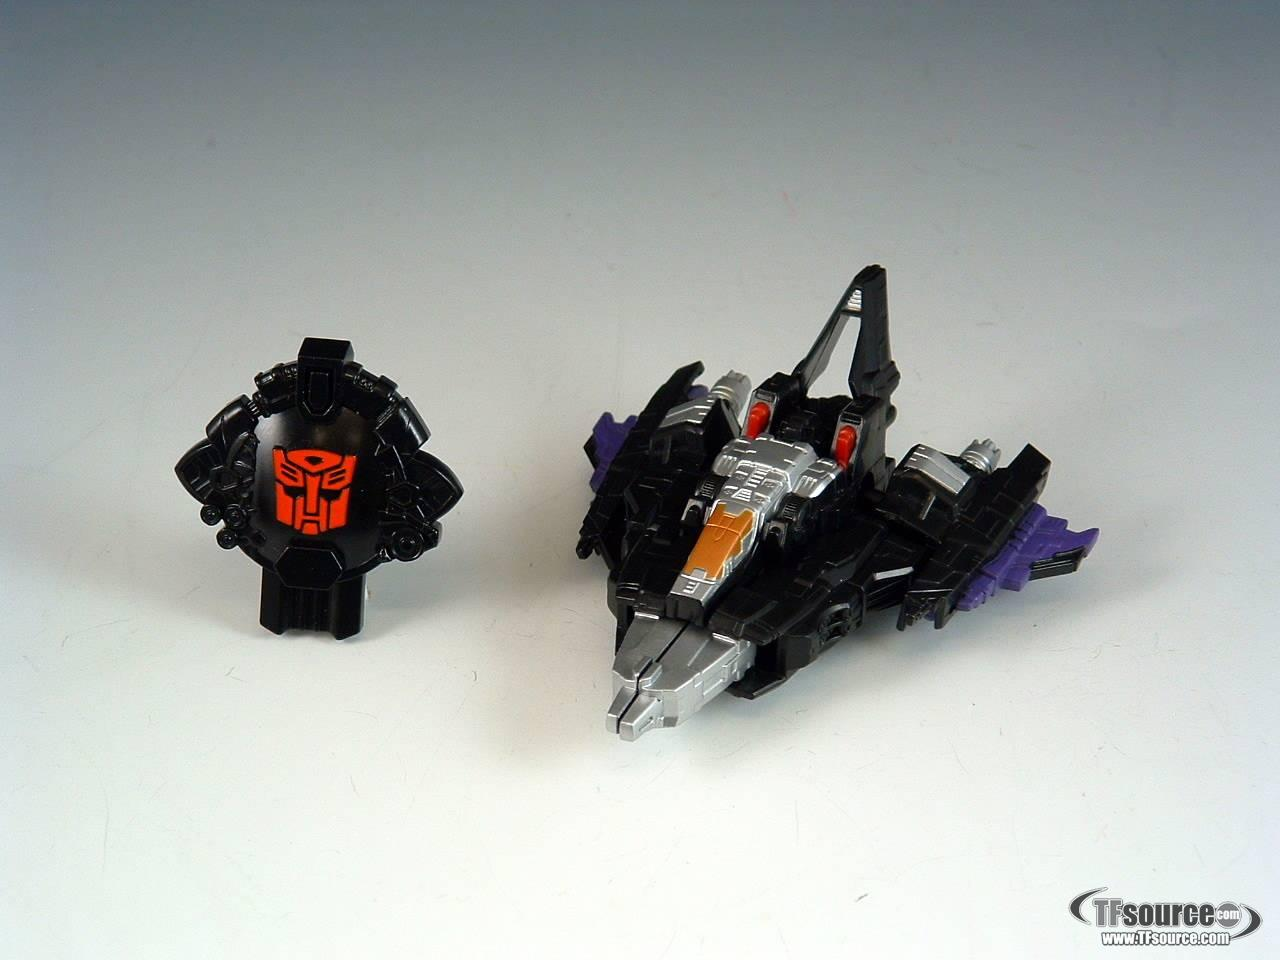 SDCC 2005 Exclusive - Cybertron Skywarp - Loose - 100% Complete